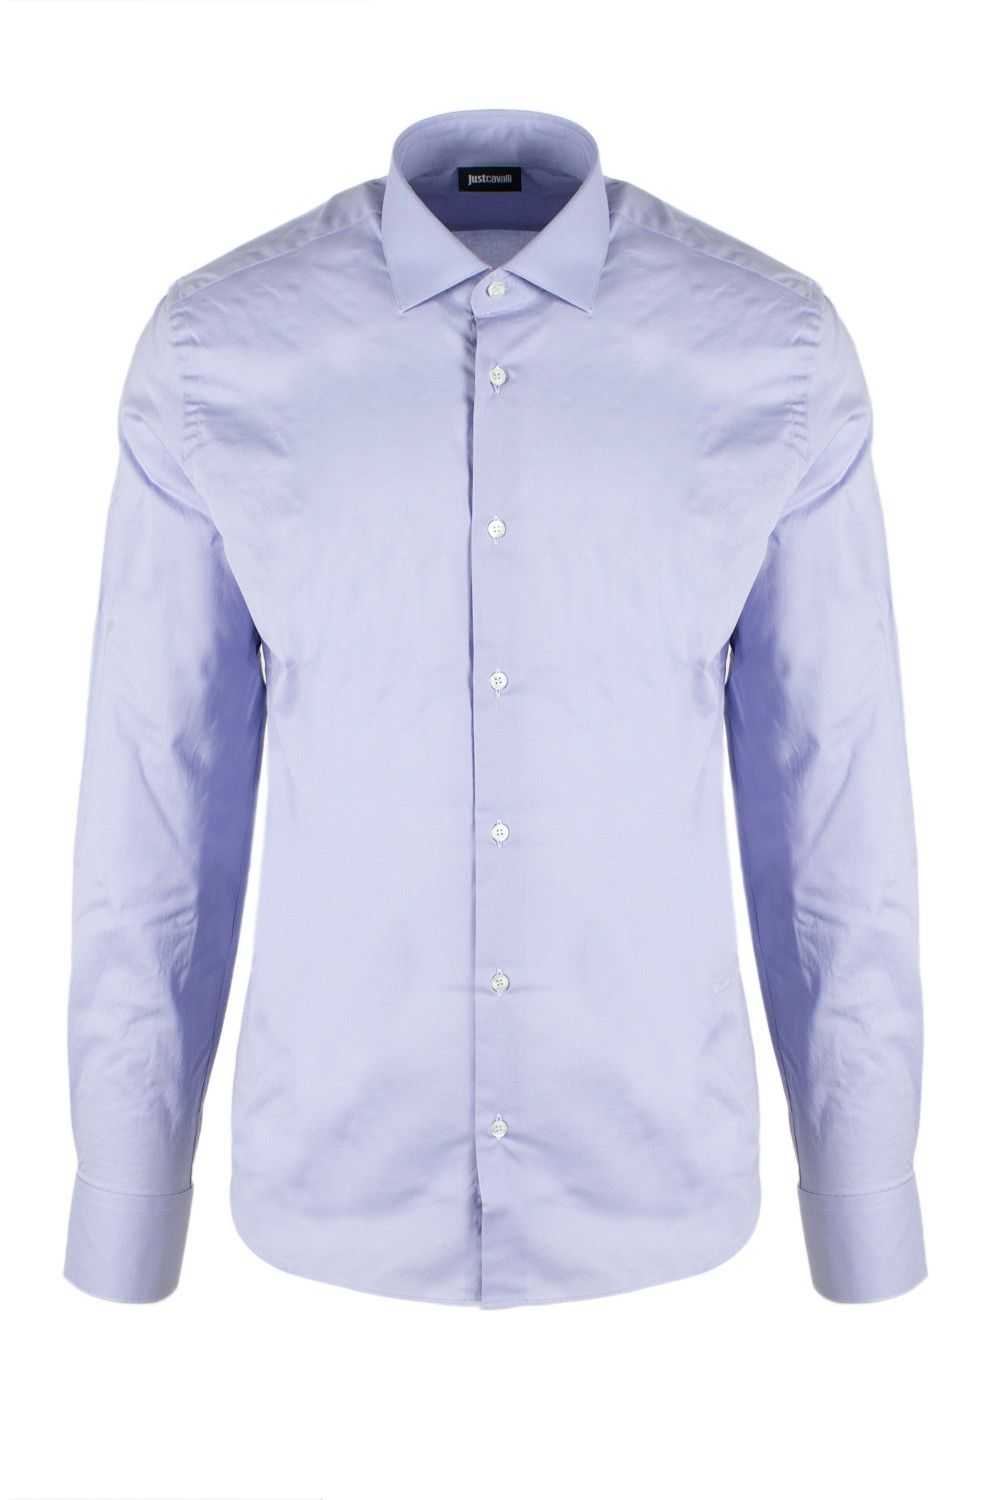 Just Cavalli Men's Shirt In Light Blue